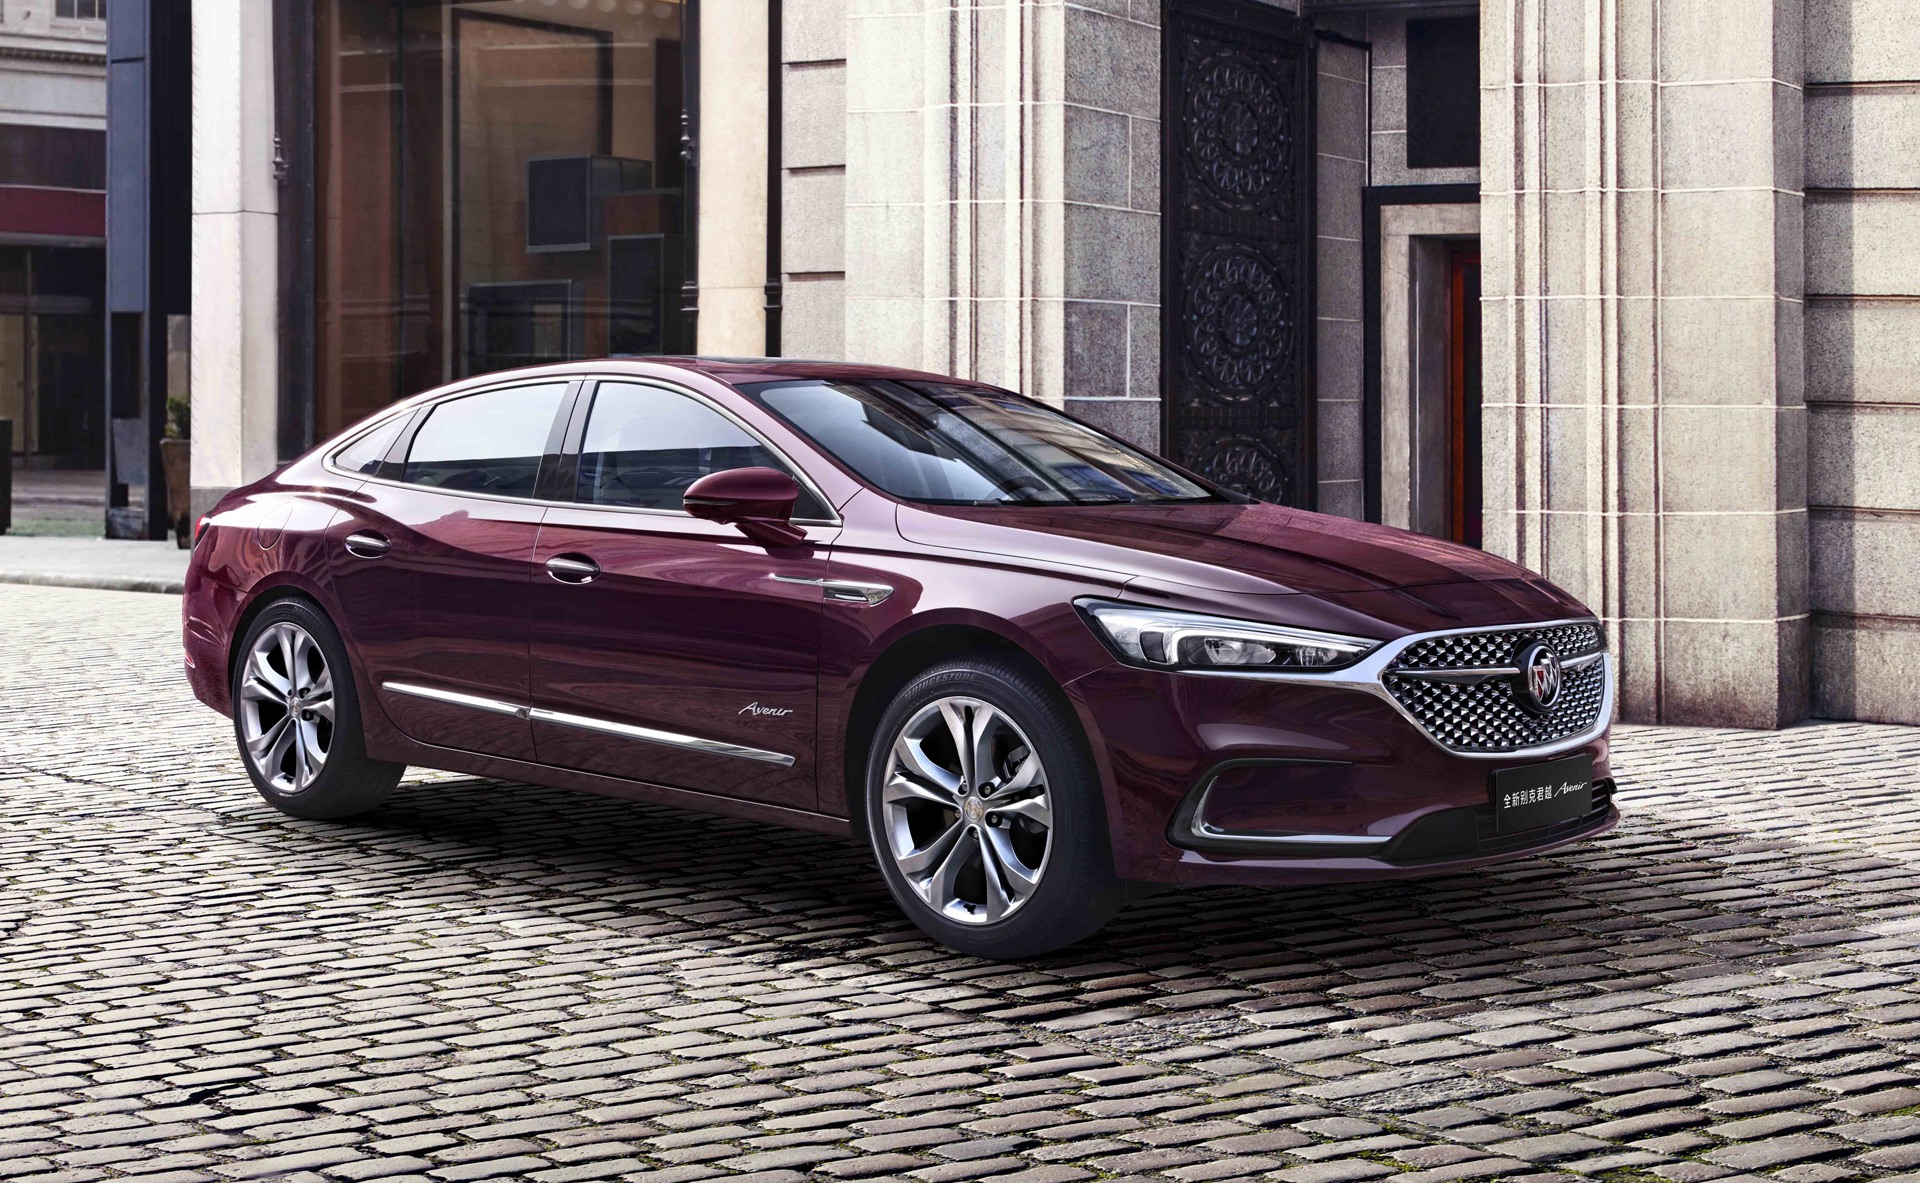 2020 Buick Lacrosse Made Handsome Just As It's Dropped In Us Price Of A 2021 Buick Lacrosse